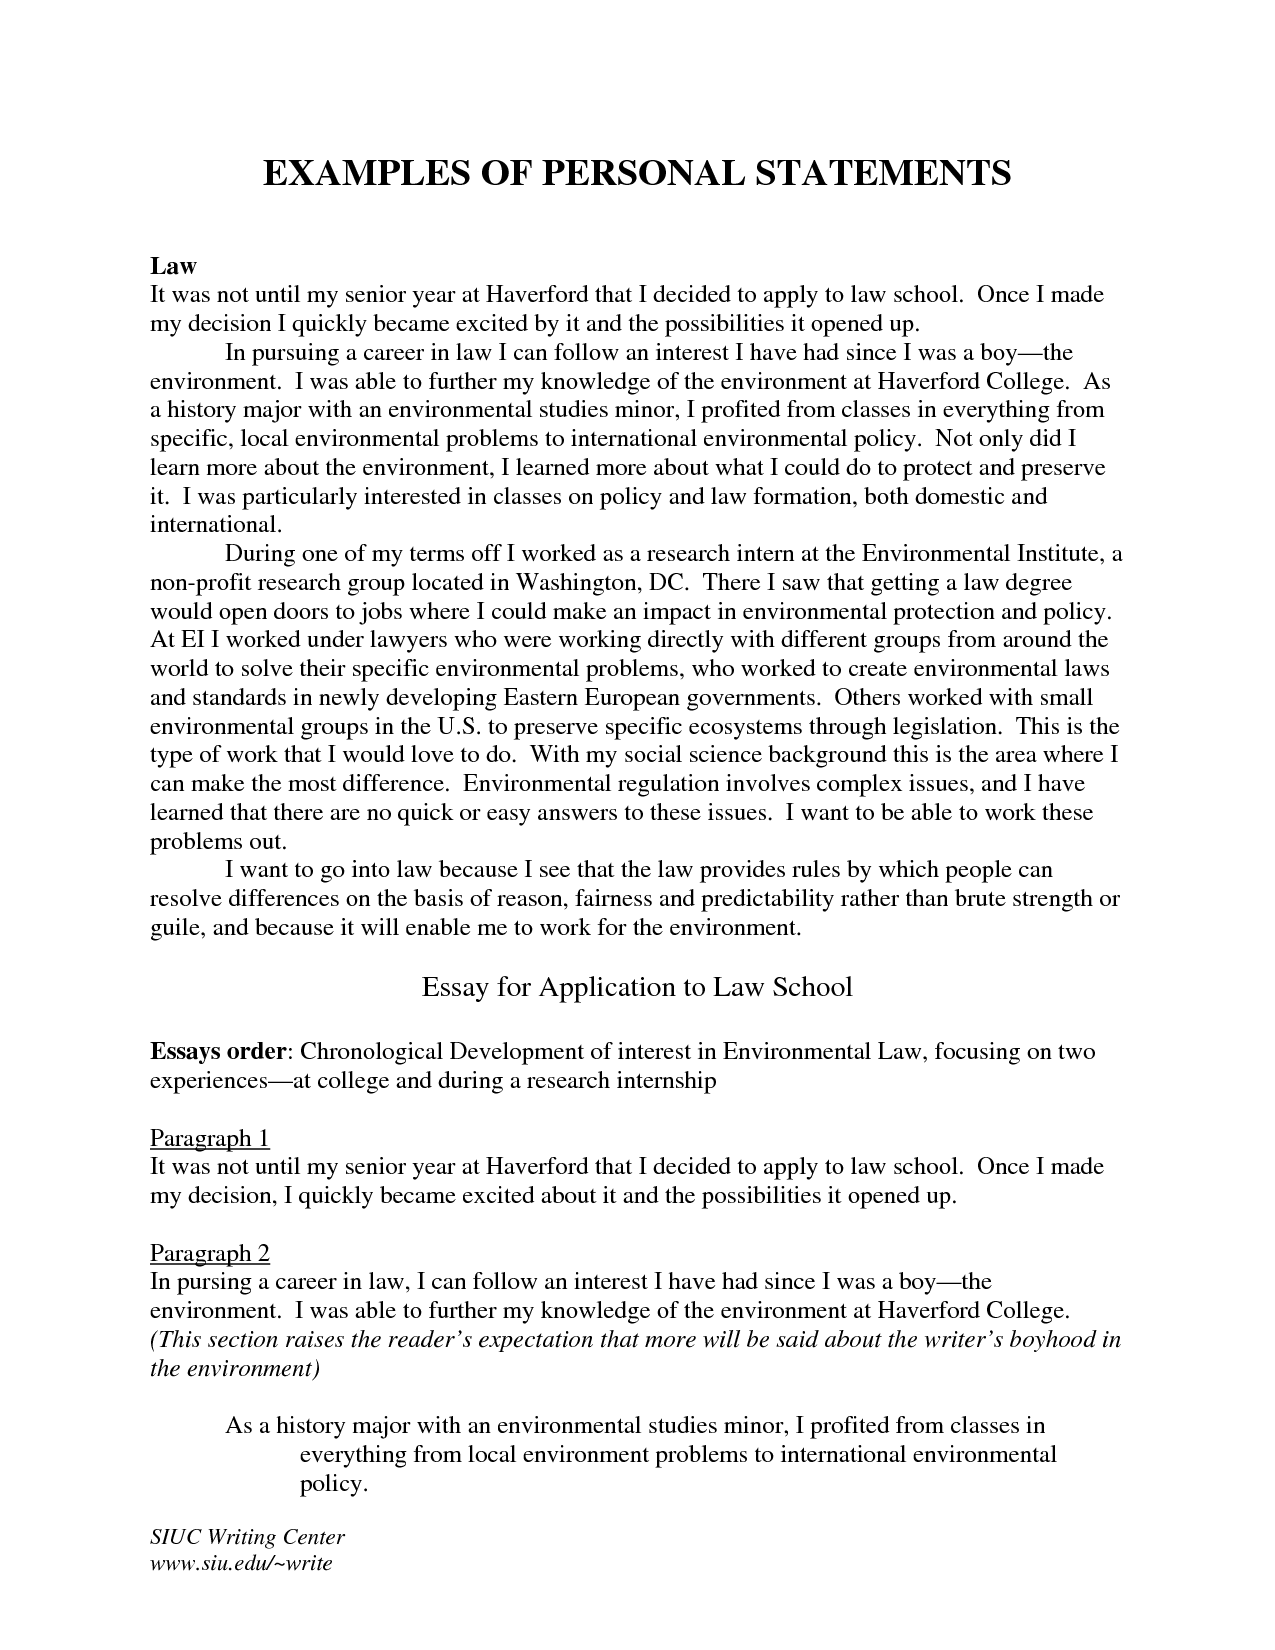 Business Studies Essays  How To Write A Thesis Sentence For An Essay also Essay Writing Scholarships For High School Students Grad School Essays Samples Offers Tips On Writing A  An Essay About Health